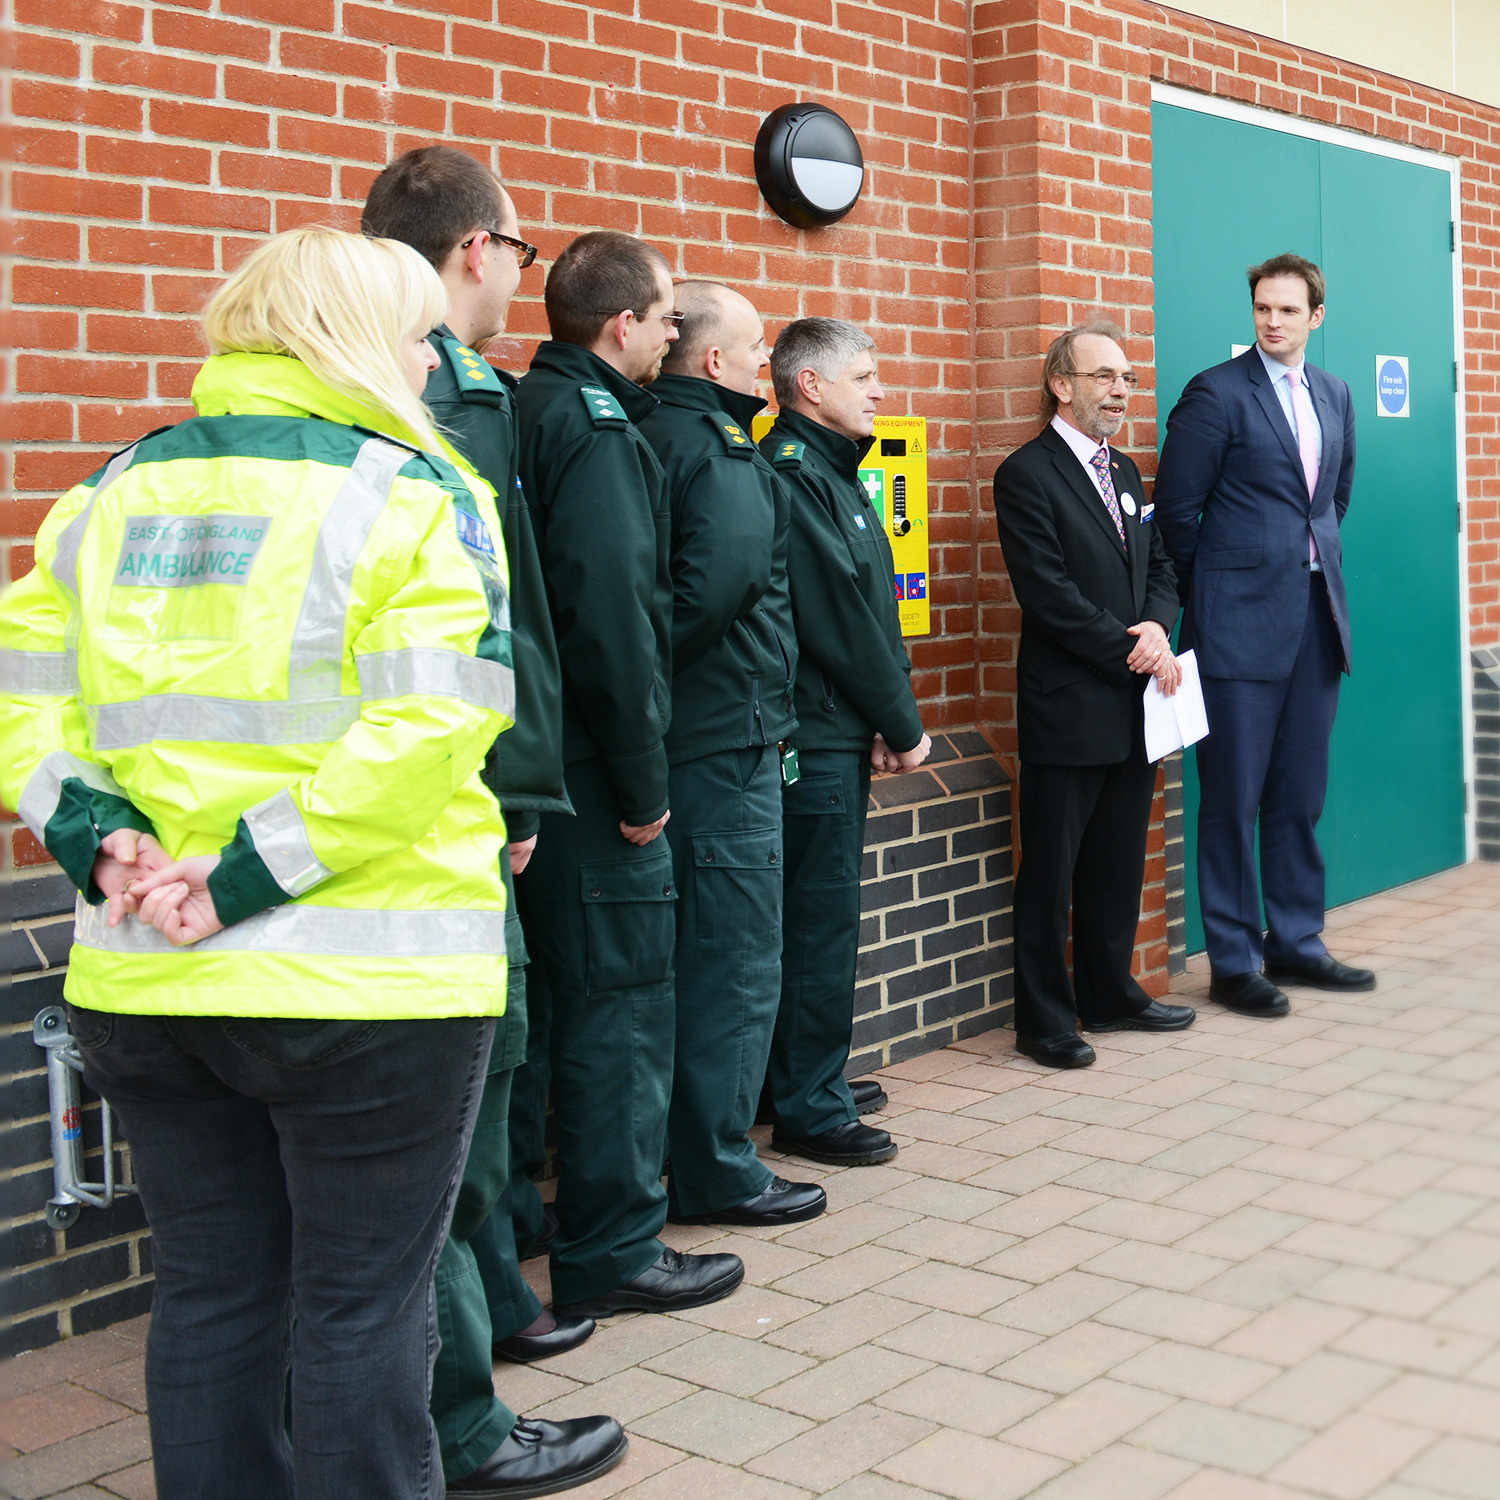 Co-op Every Minute Counts Defibrillator unveiling